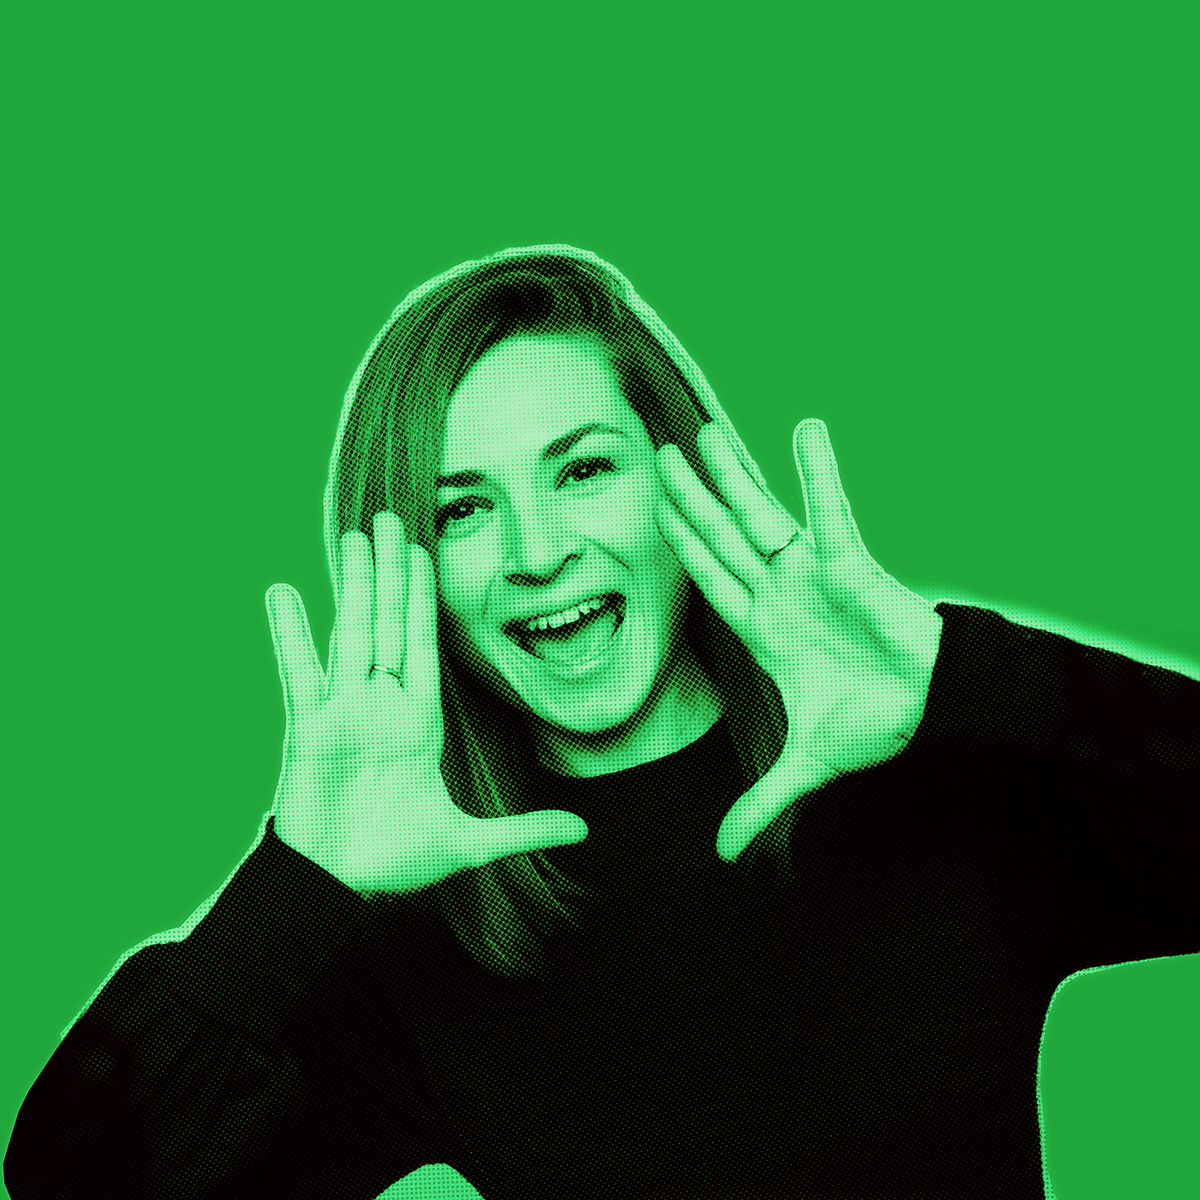 Green-filtered picture of woman smiling and holding both hands to the side of her face